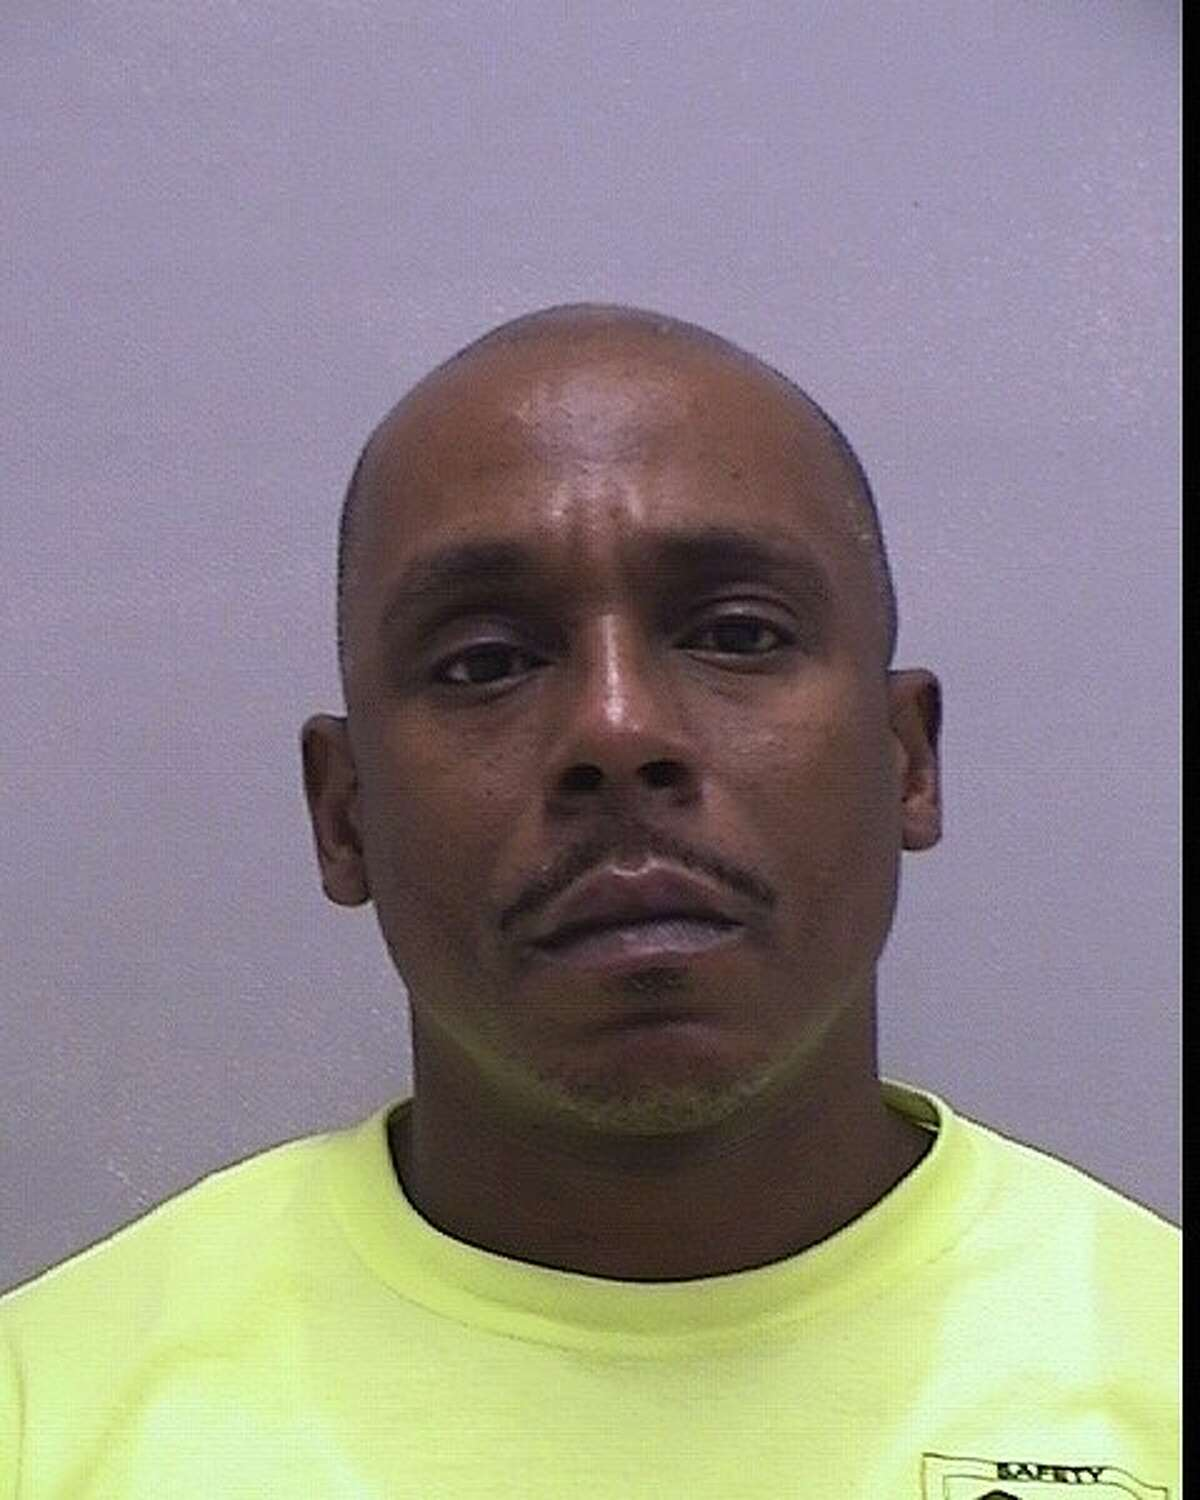 Robert Greene, 45, of Hamden, is accused of blocking the exit of a business in Orange earlier this summer. Photo courtesy of the Orange Police Department.